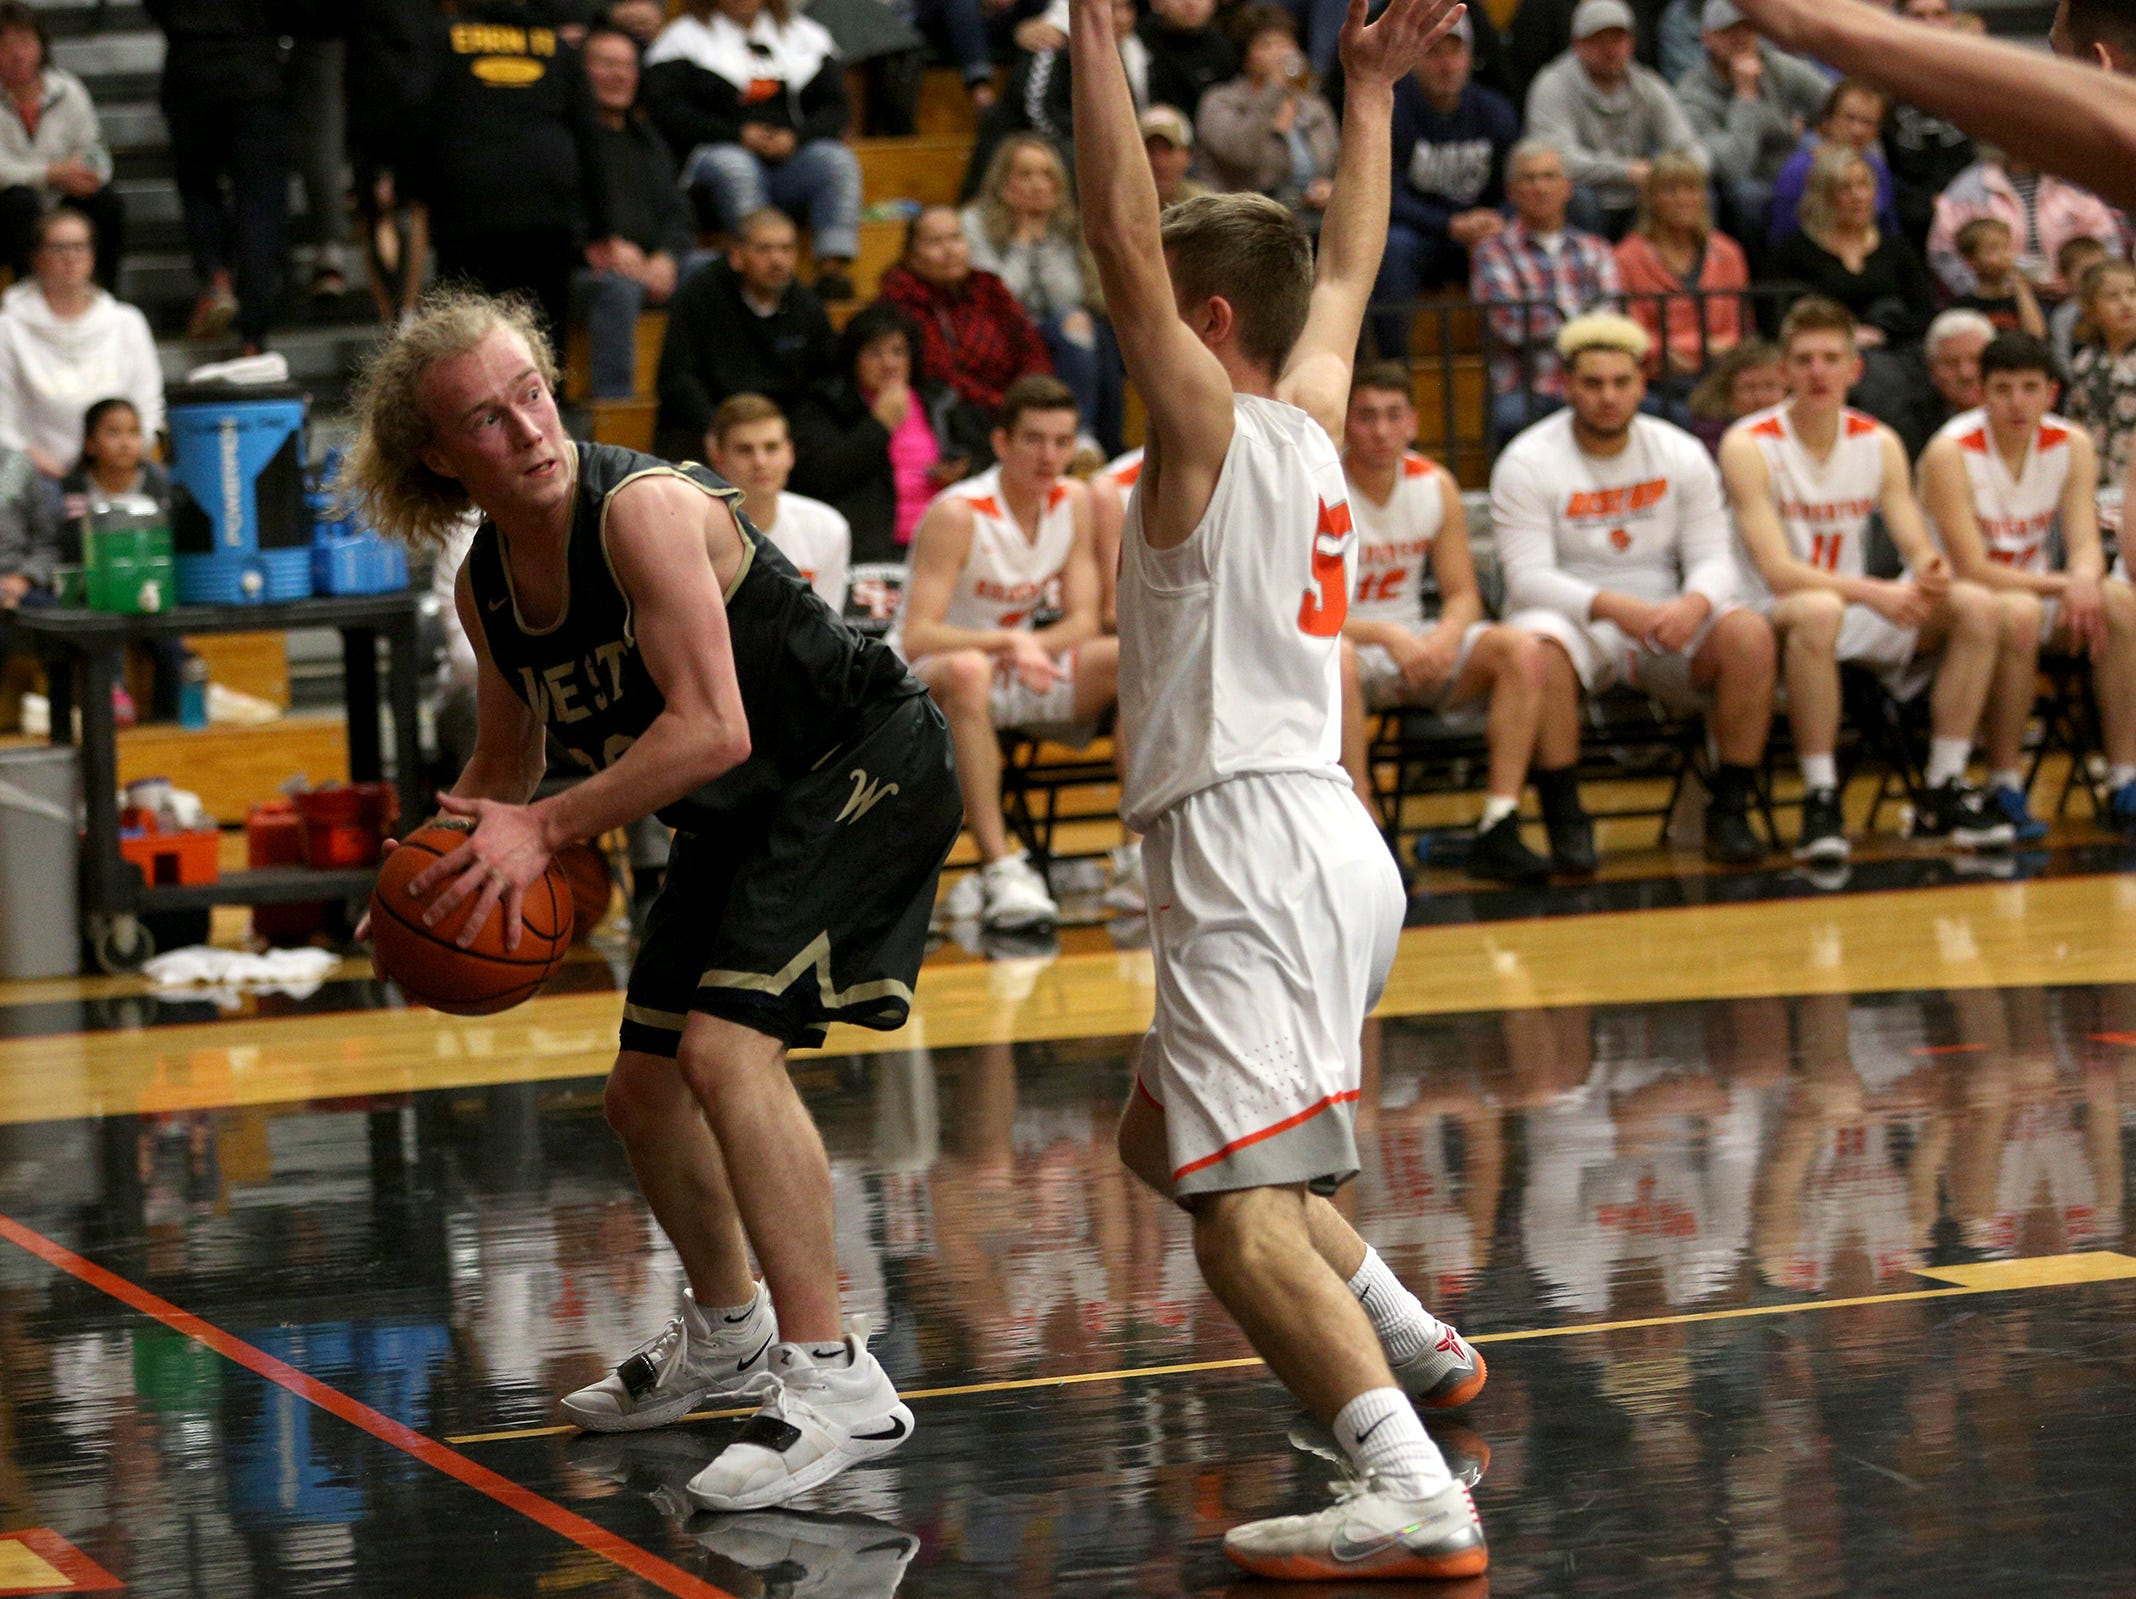 West Albany's Austin Stanaway (20) attempts to get around Silverton's defense during the West Albany vs. Silverton High School boys basketball game in Silverton on Friday, Jan. 25, 2019.